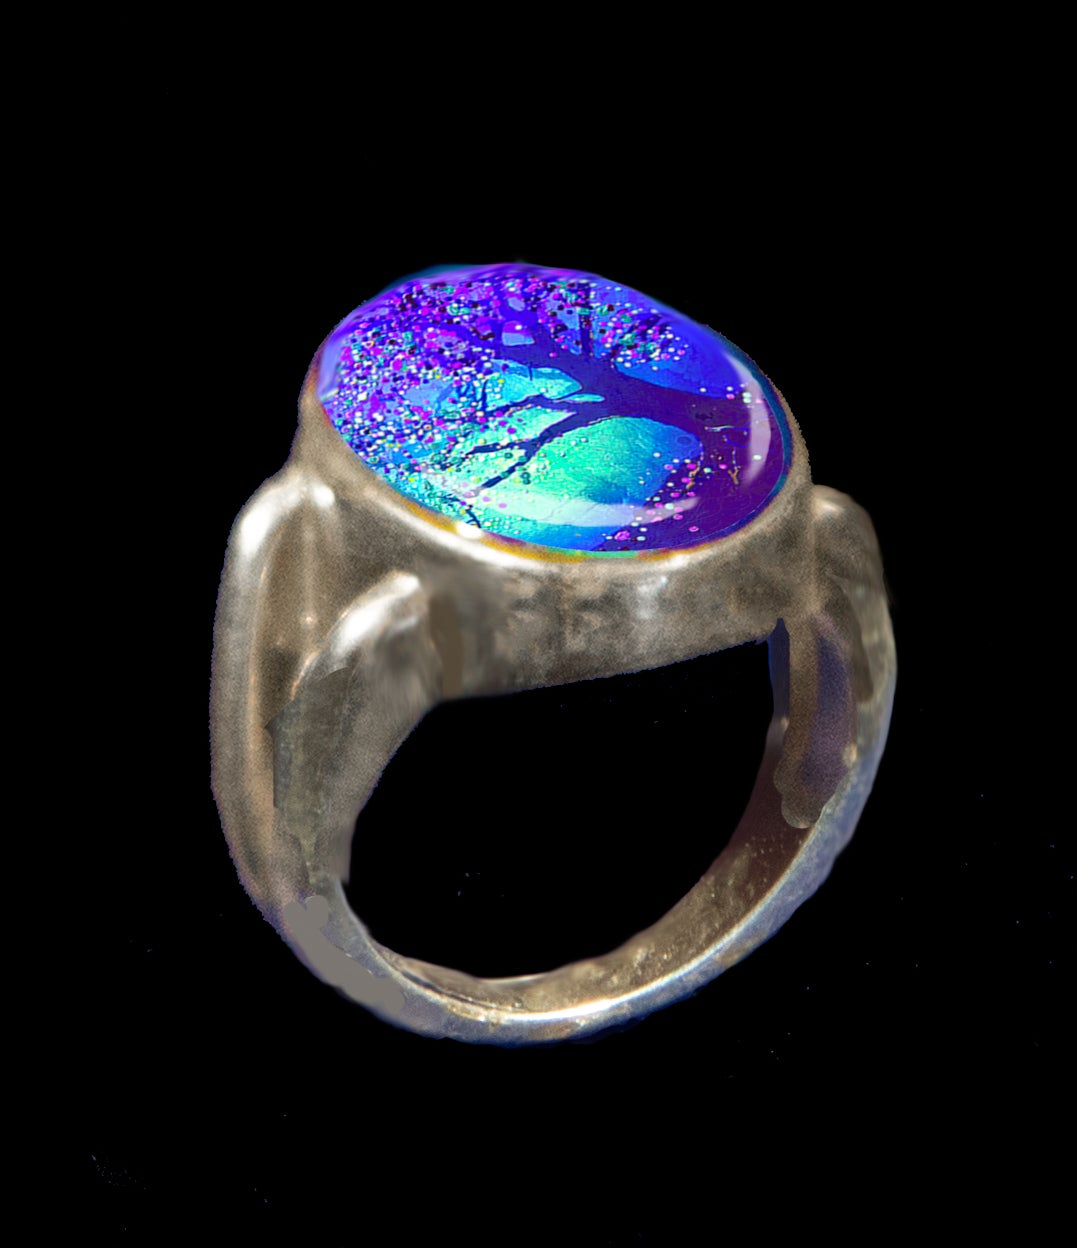 The Energy Art Store By Julia Watkins — Firefly Tree. Music Rings. Insane Wedding Rings. Blackened Rings. Shoulder Wedding Rings. Arabic Wedding Rings. 10 Thousand Dollar Engagement Rings. Right Hand Wedding Rings. Open Heart Engagement Rings